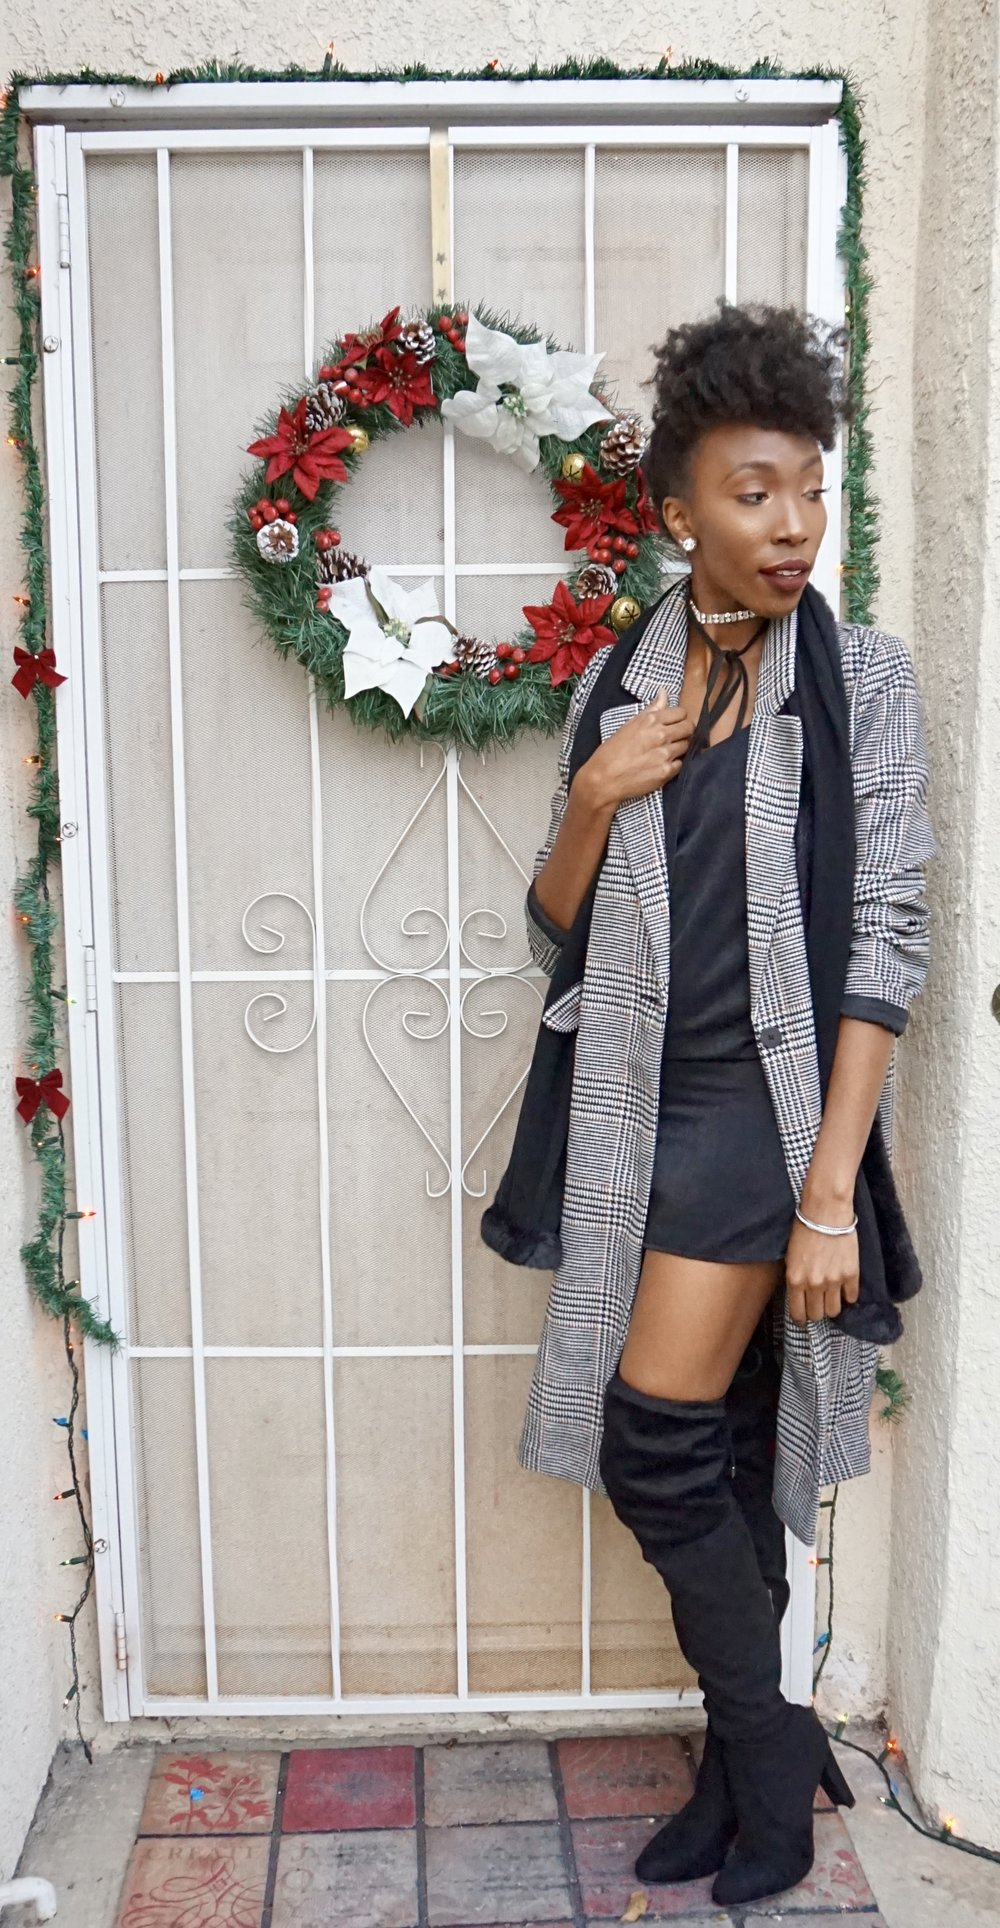 Not up for all of the Sparkle and Glitter... You can Slay in Black!!!! A LBD paired with Glam accessories can make anyone feel Fierce and Fab at any party!!!  Slip Dress:  H&M   Coat: H&M  Boots:  A'GACI   Scarf:  Cabi    Chocker:  A'GACI